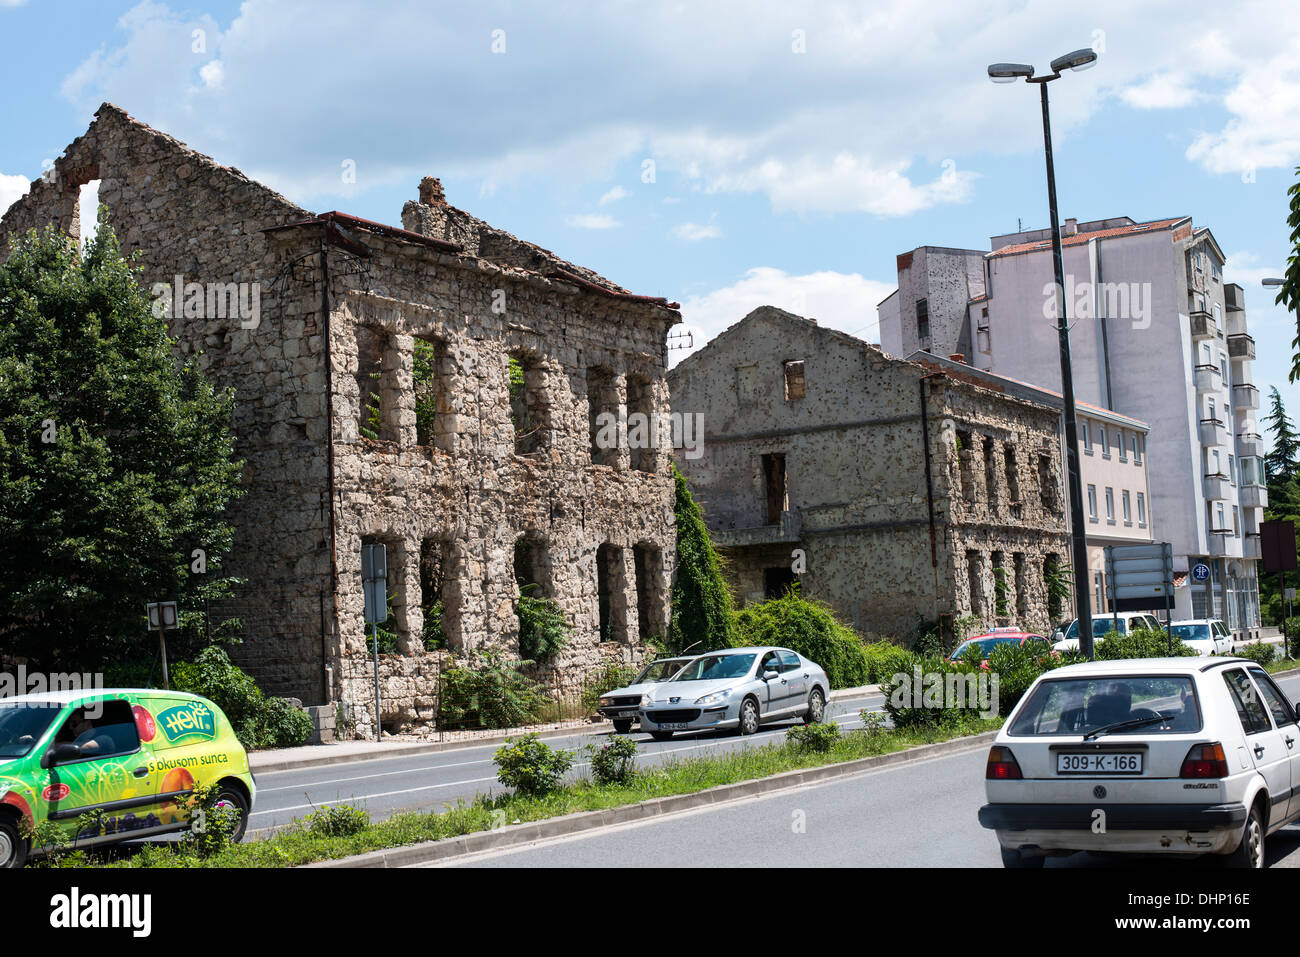 Ruined buildings can be seen everywhere in the town of Mostar. A vivid scar of the 1990s Balkan war between Croats and Bosnians. - Stock Image